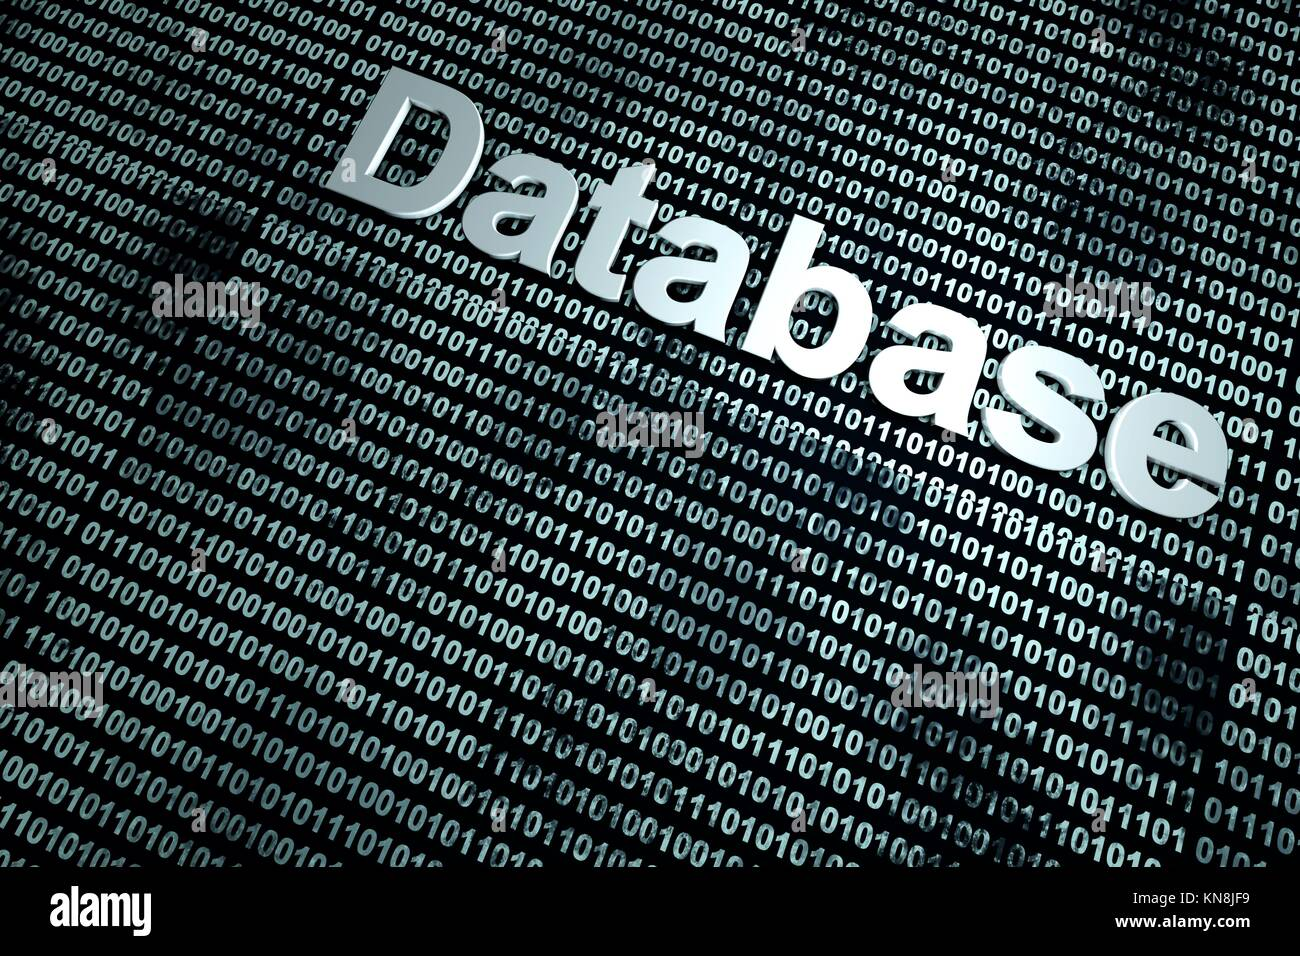 A binary database background. 3D Illustration.. - Stock Image